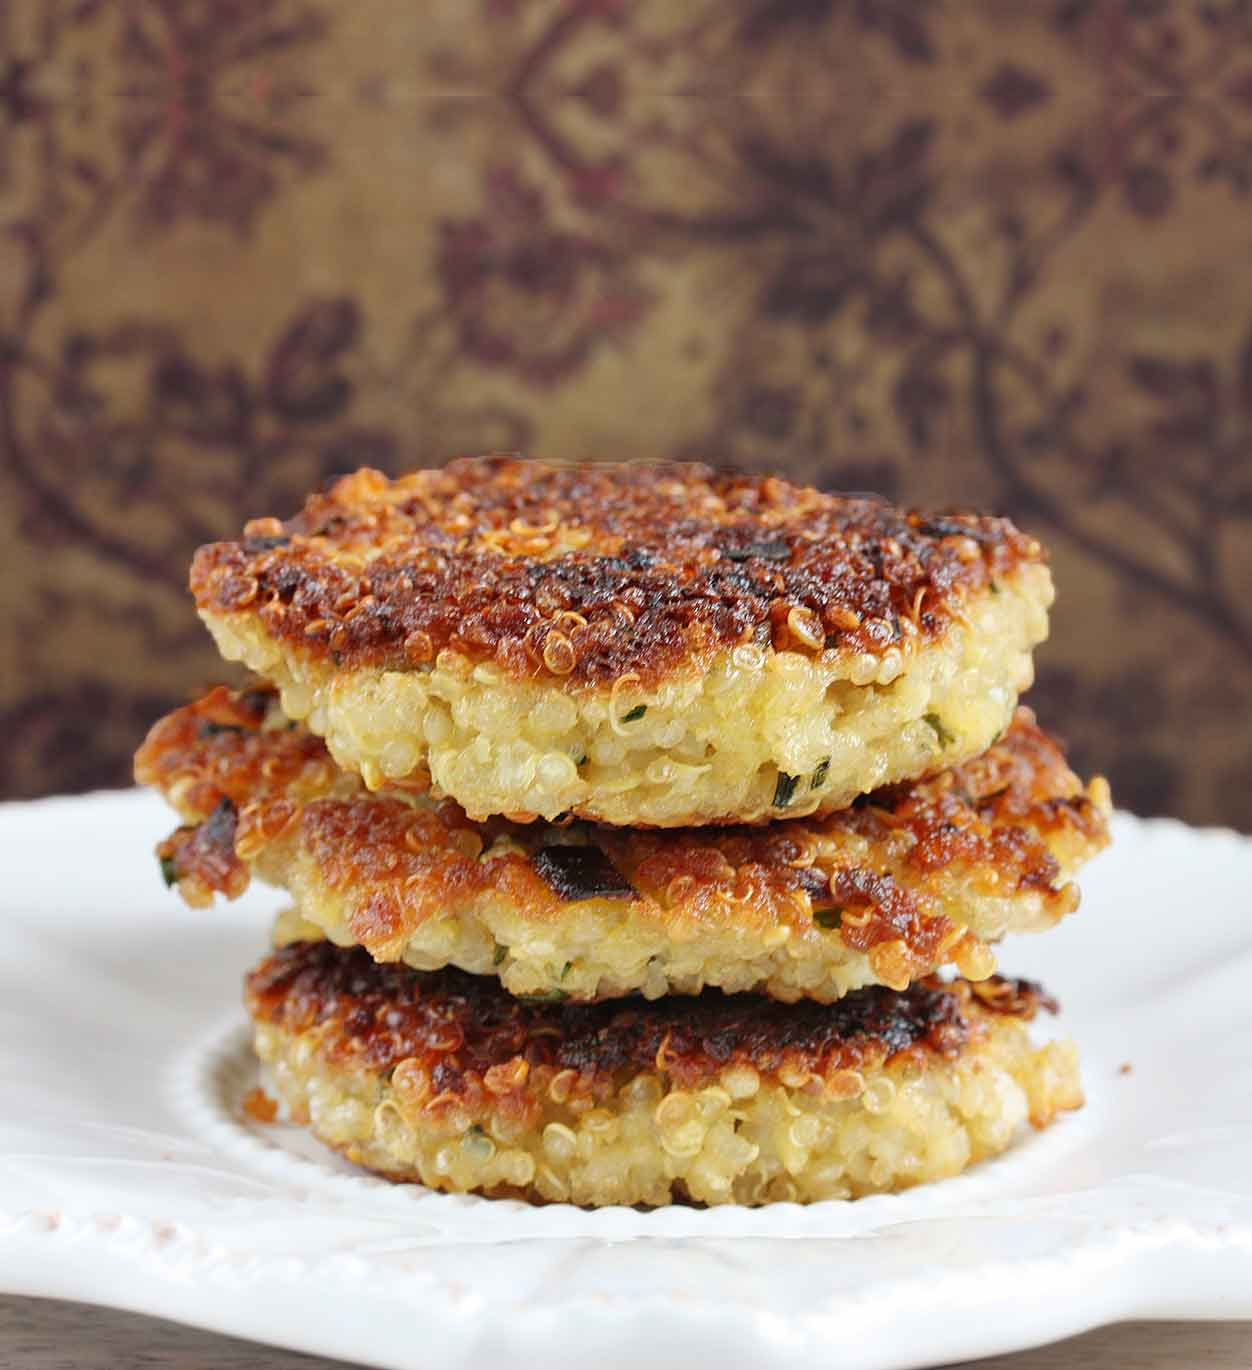 A stack of three quinoa patties on a white plate